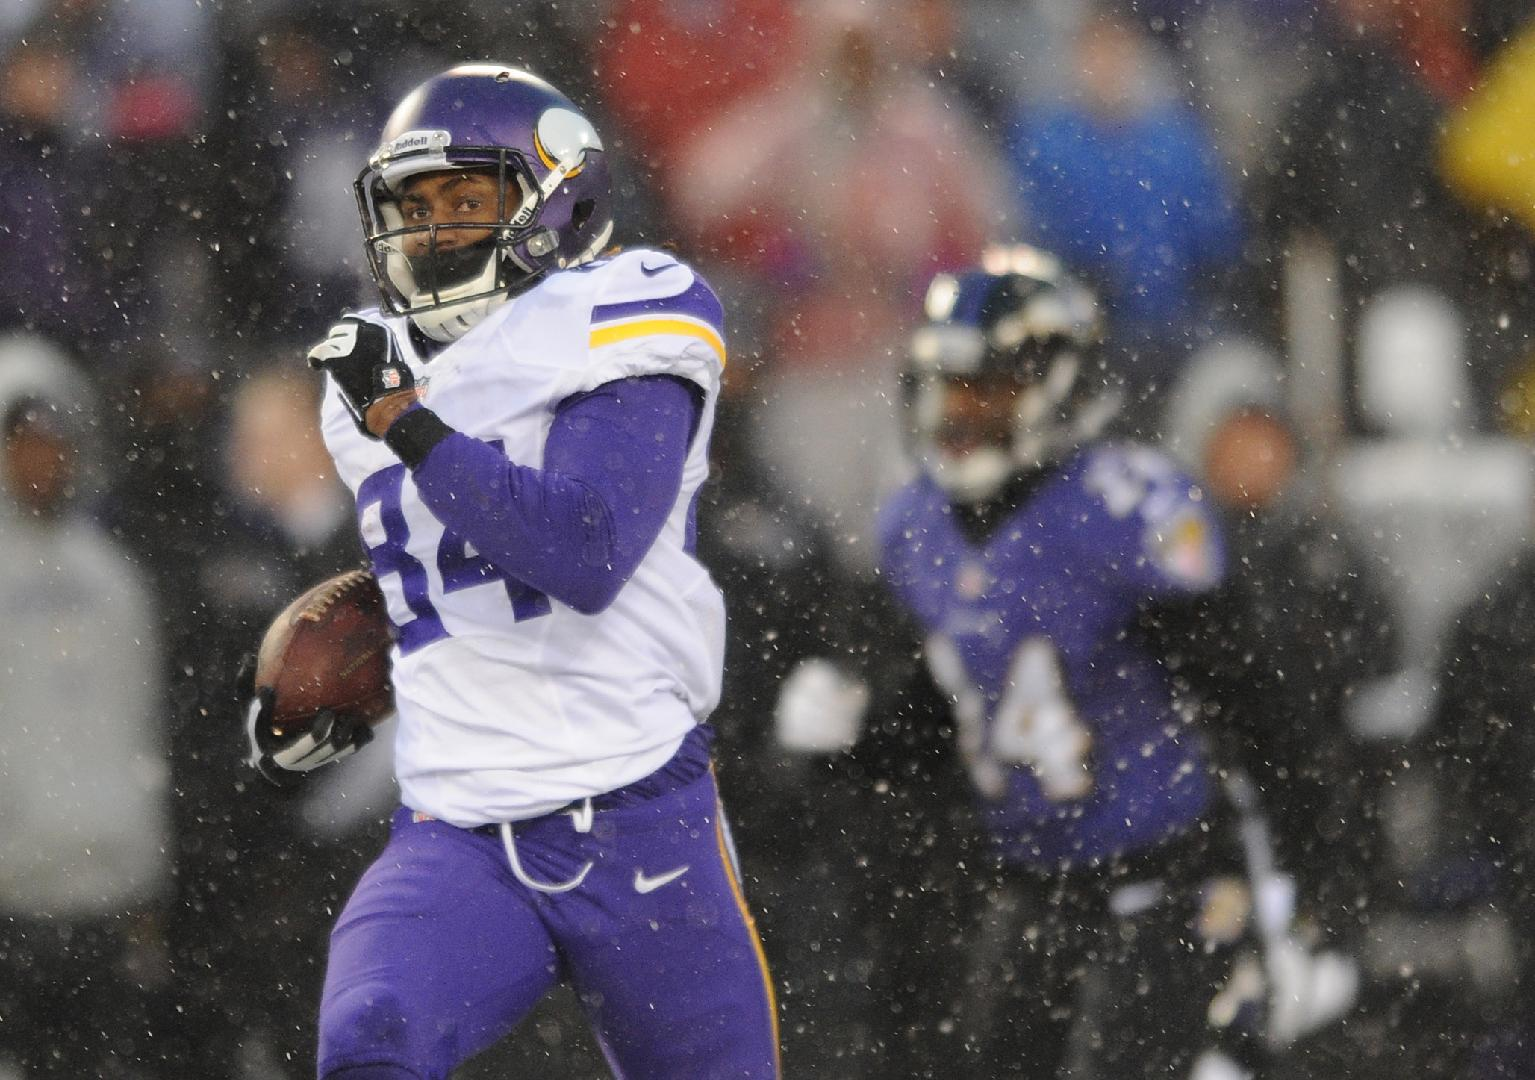 In this Dec. 8, 2013 file photo, Minnesota Vikings wide receiver Cordarrelle Patterson runs for a touchdown in the second half of an NFL football game against the Baltimore Ravens, in Baltimore. Every year in the NFL, examples abound of players in prominent roles in December who were barely noticeable in September. Minnesota's Cordarrelle Patterson, Philadelphia's Nick Foles and Tampa Bay's Bobby Rainey are a few of those